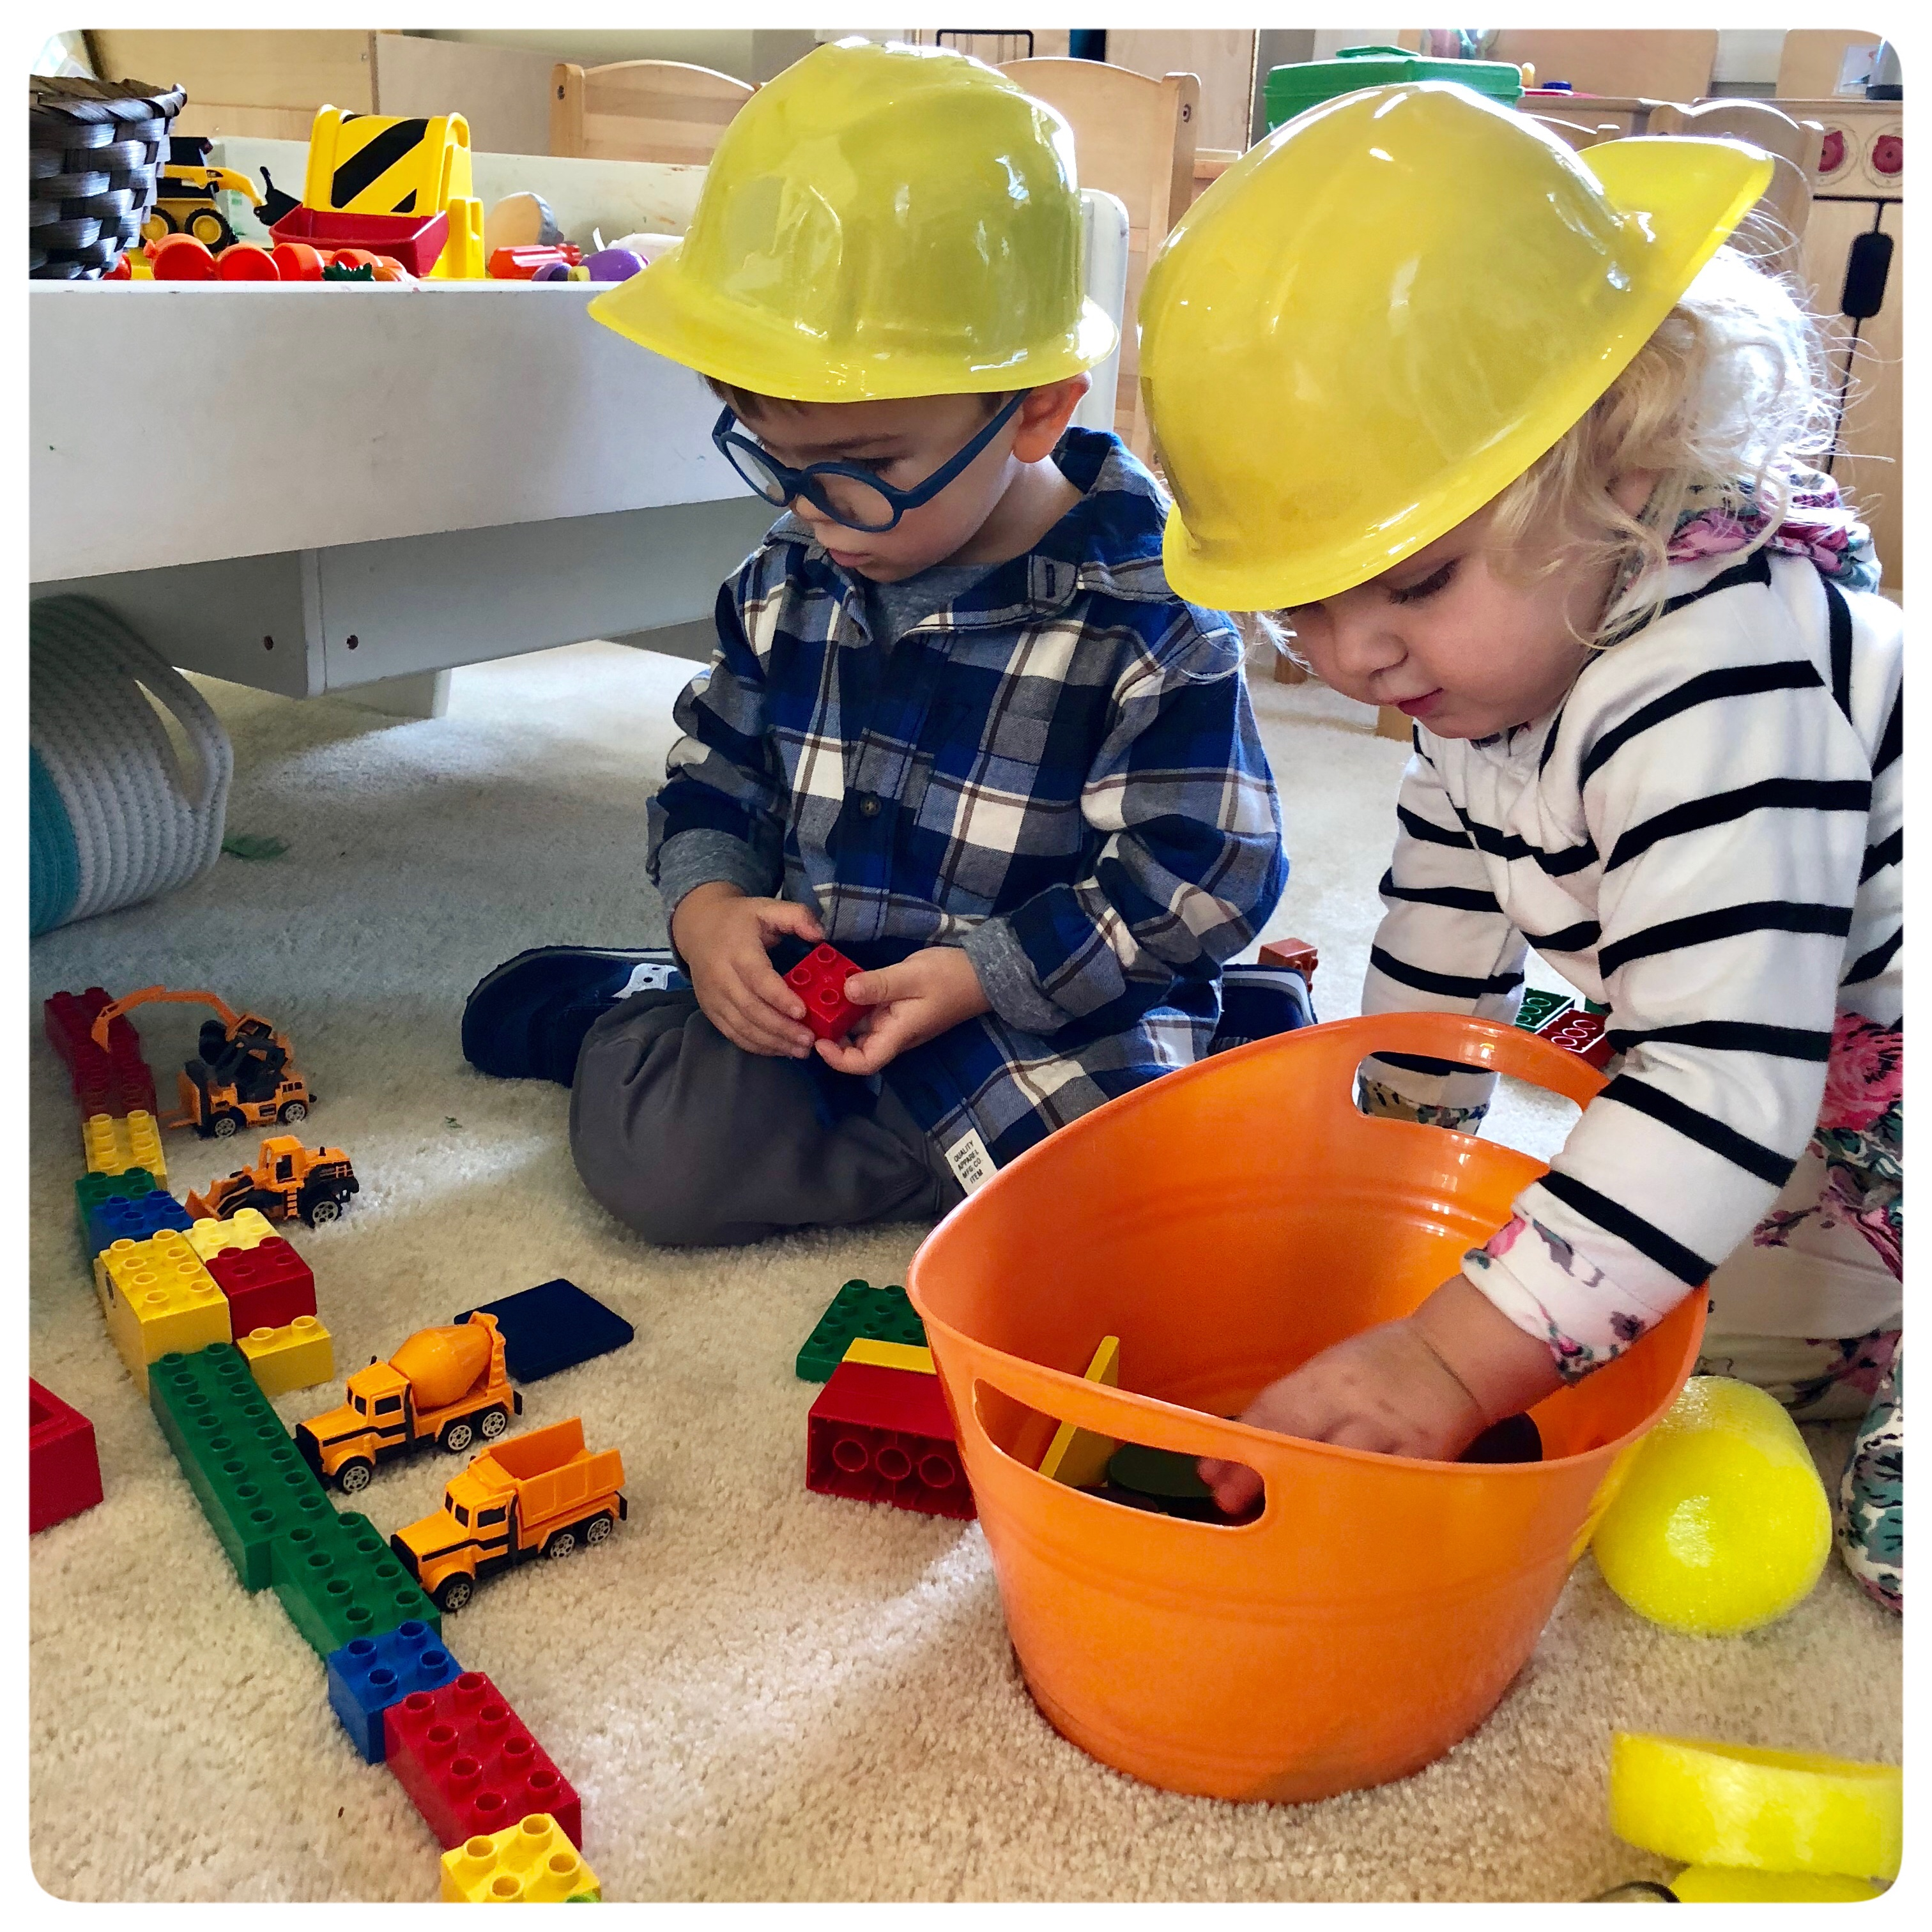 Construction Site!  We will be building math, literacy, science, and social skills during our pretend play.